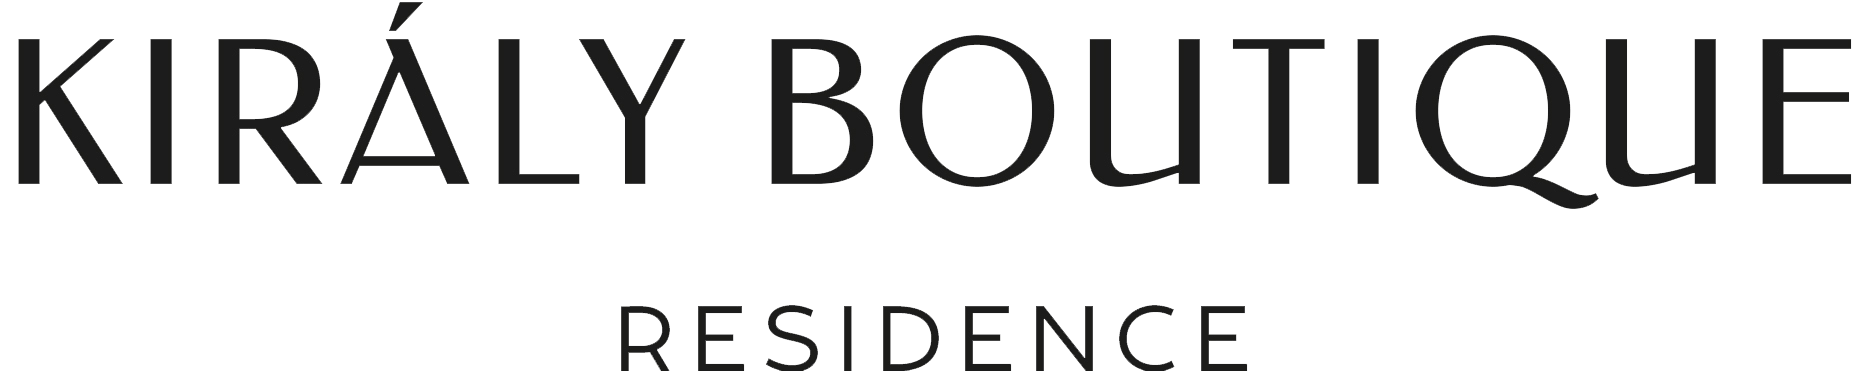 kiraly boutique logo